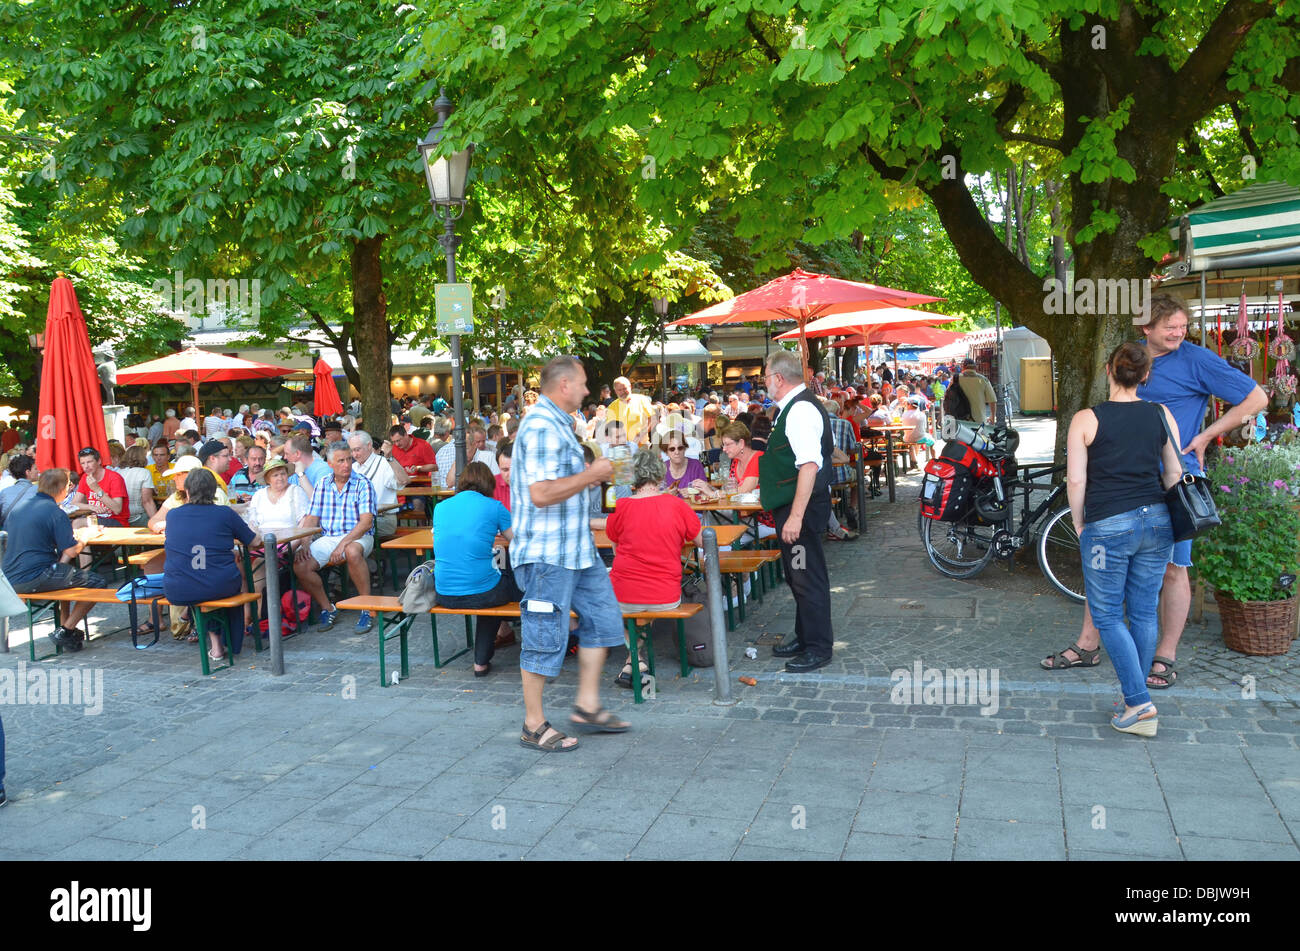 China Restaurant Kempten Beergarden Stock Photos And Beergarden Stock Images Alamy